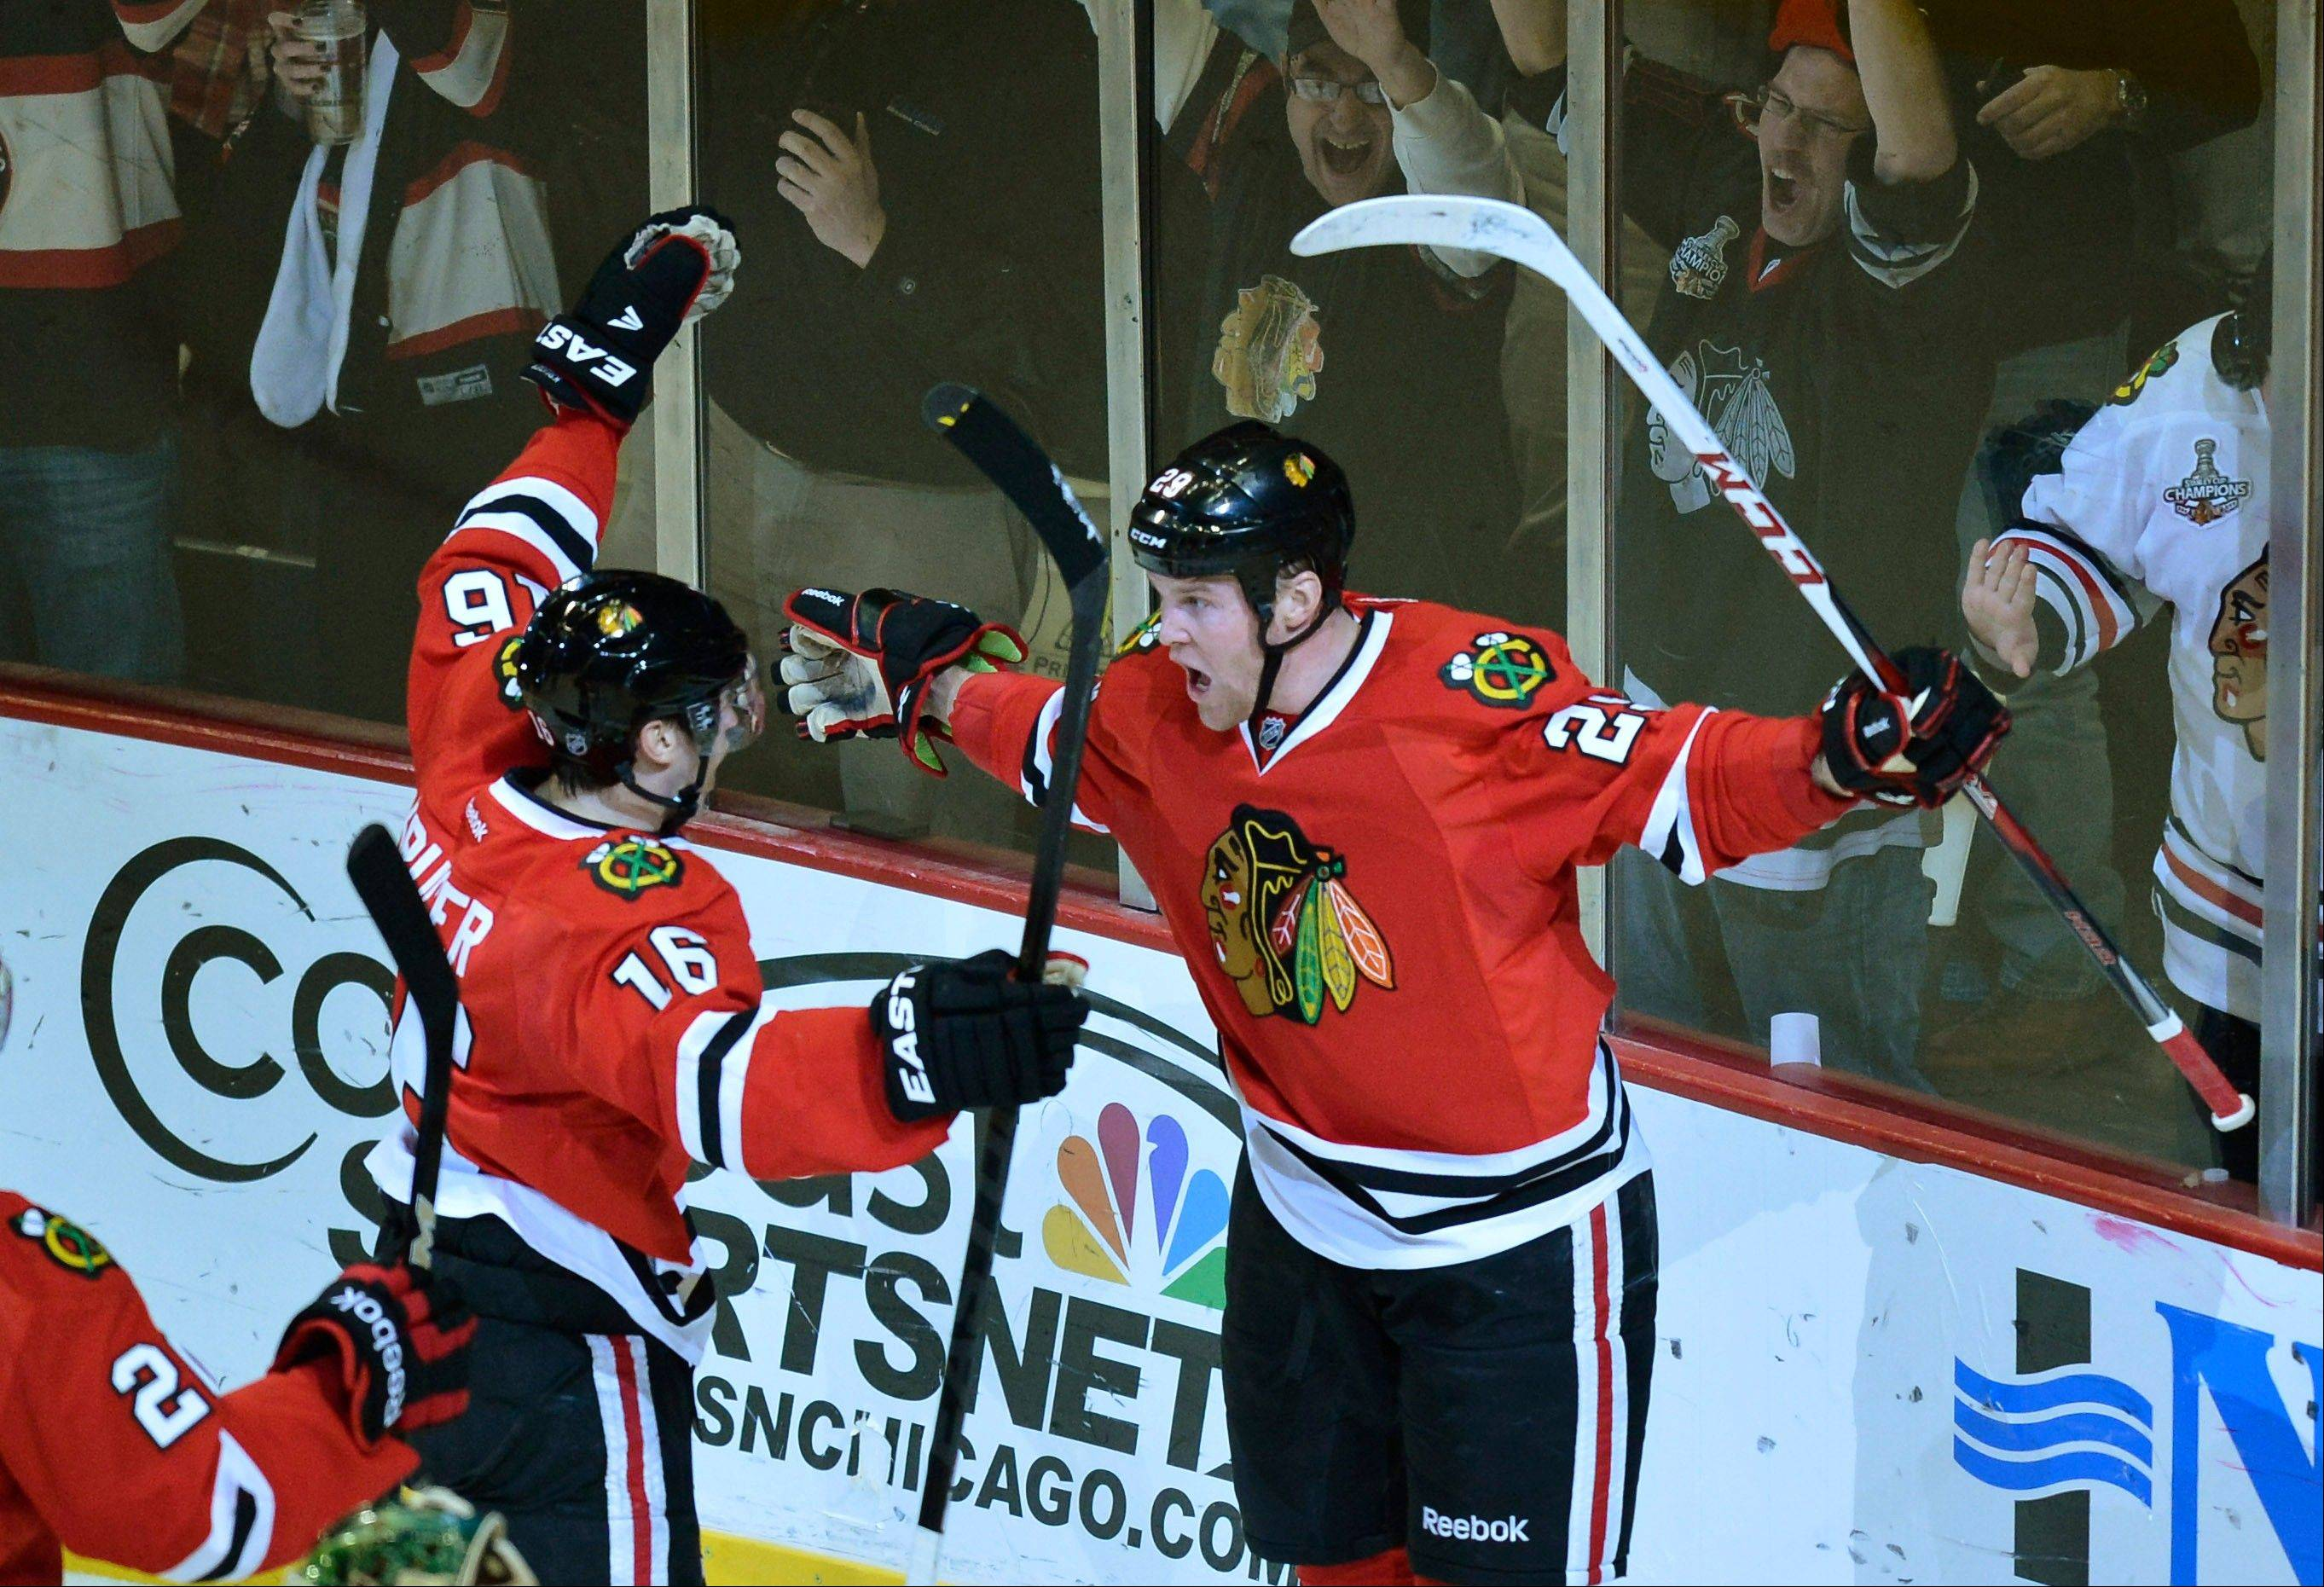 Blackhawks center Marcus Kruger, left, and left wing Bryan Bickell celebrate after Bickell scored during the first period of an NHL hockey game against the Minnesota Wild, Tuesday, March 5, 2013 in Chicago.